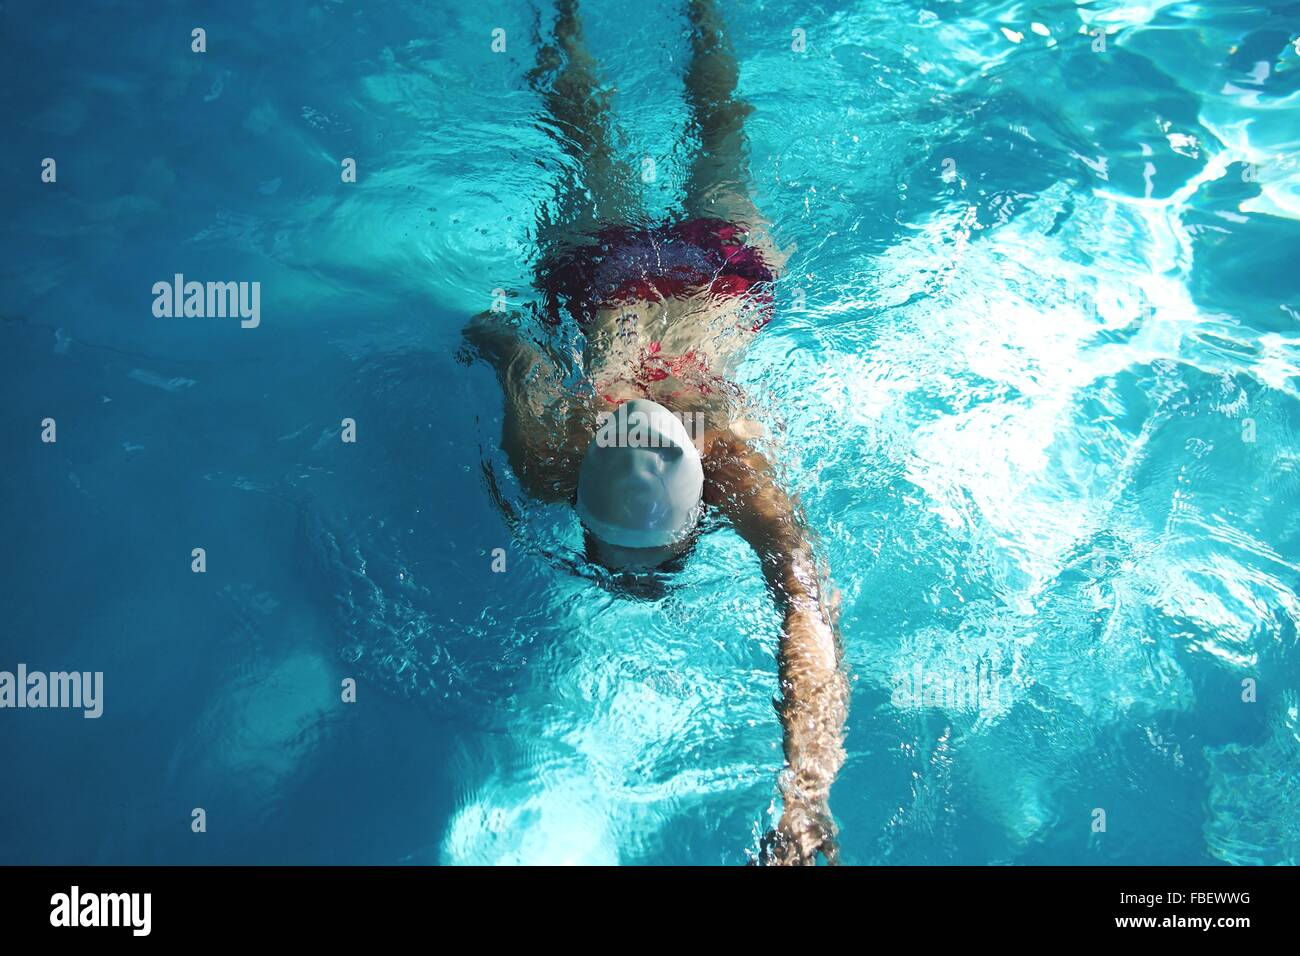 High Angle View Of Frau im Schwimmbad Stockbild